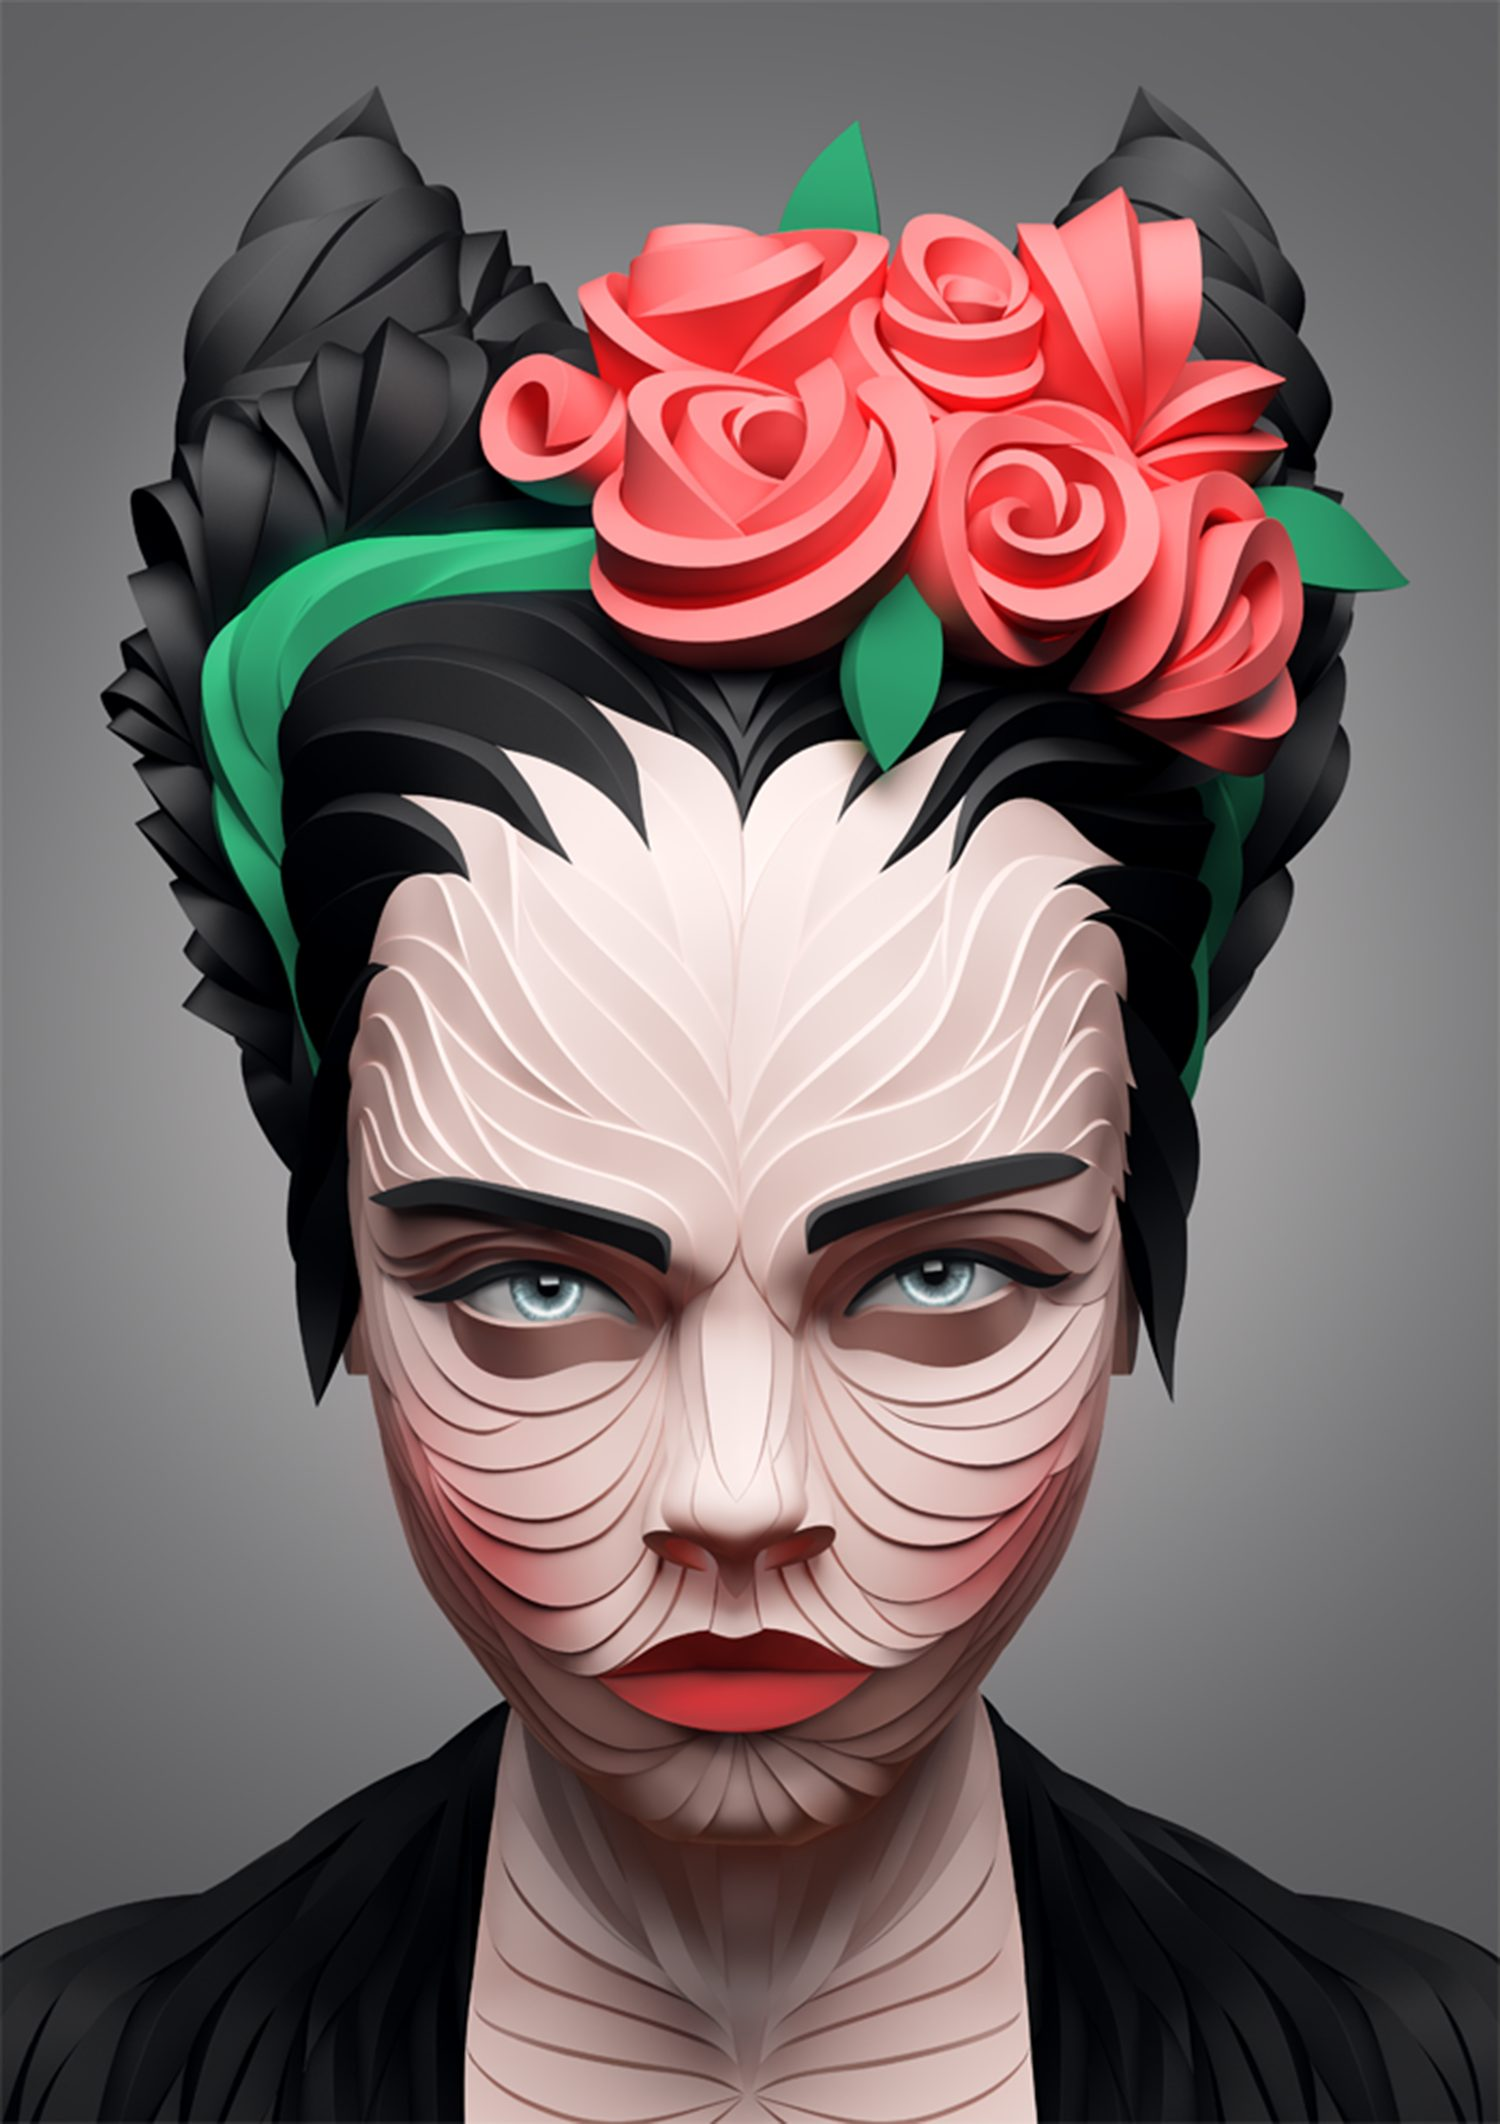 Girl with roses hairband, digital art